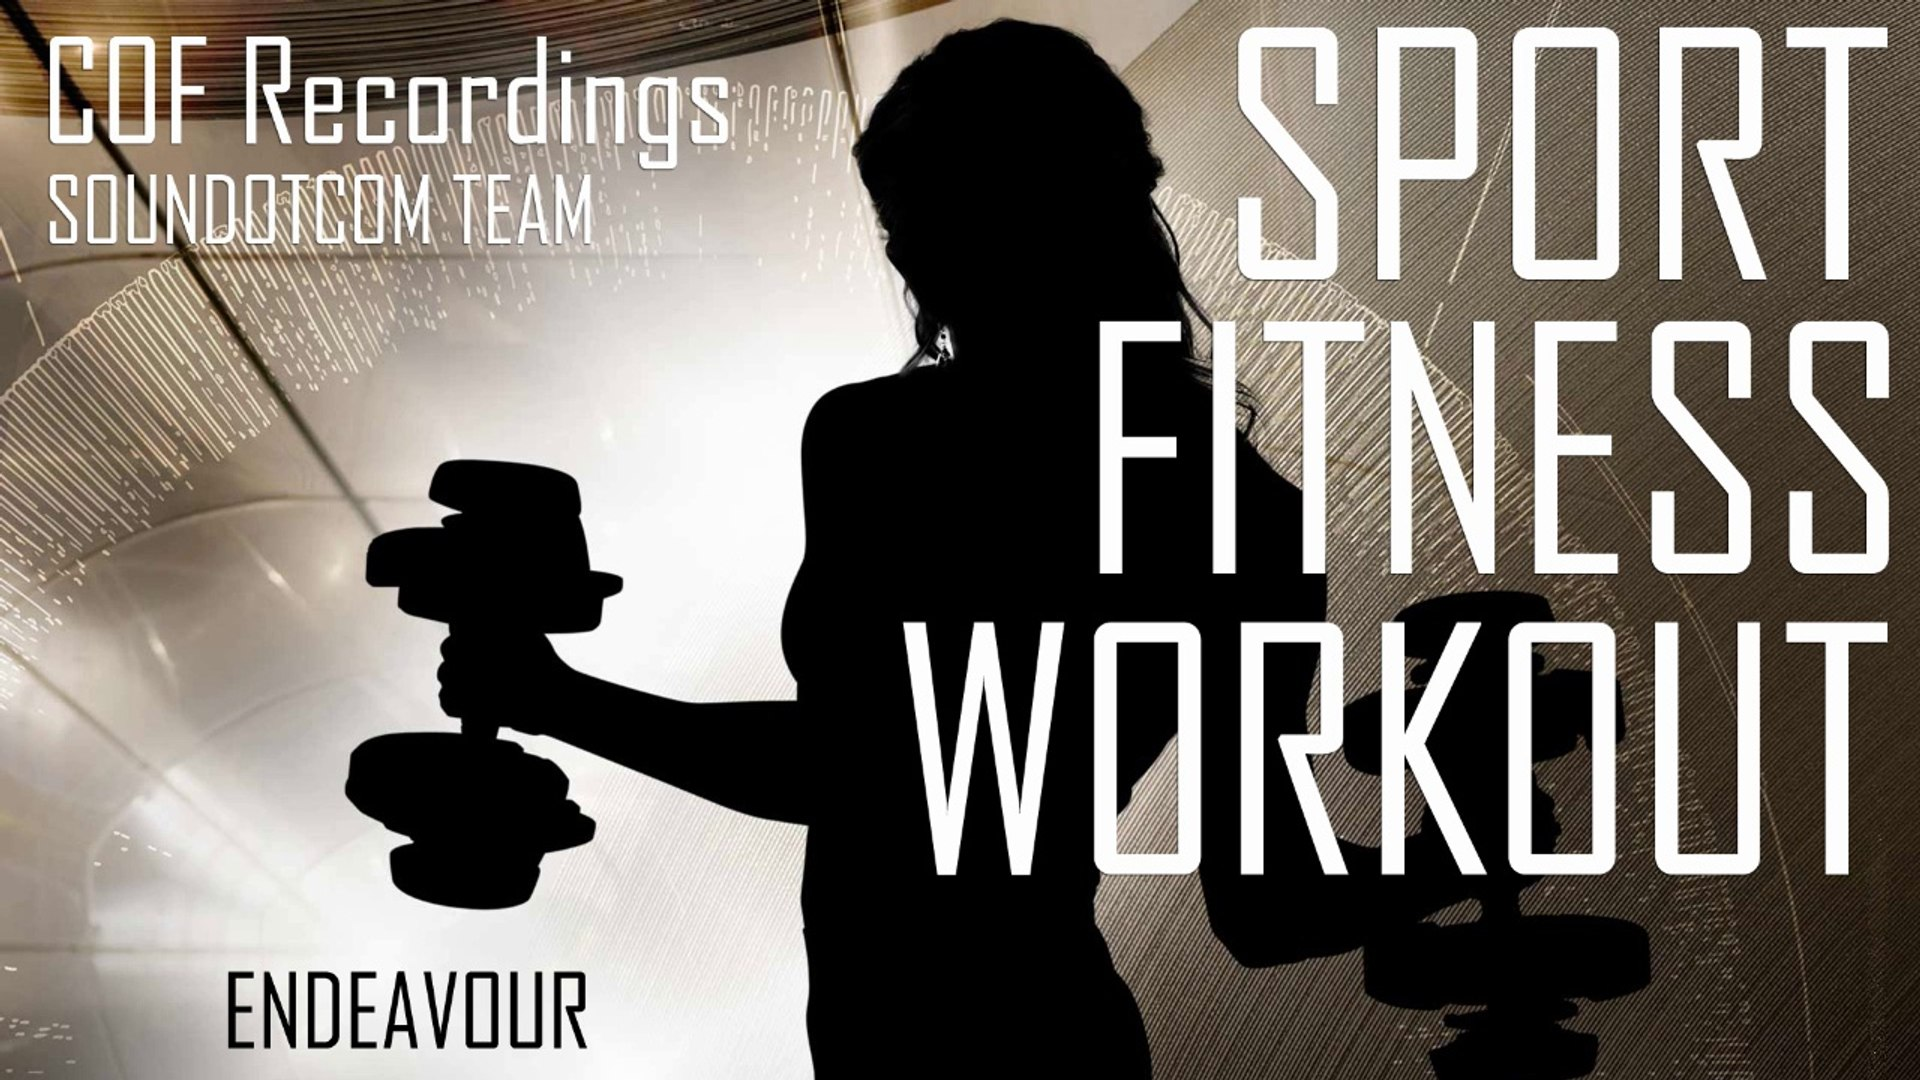 Royalty Free Music - Sports Energetic Workout   Endeavour